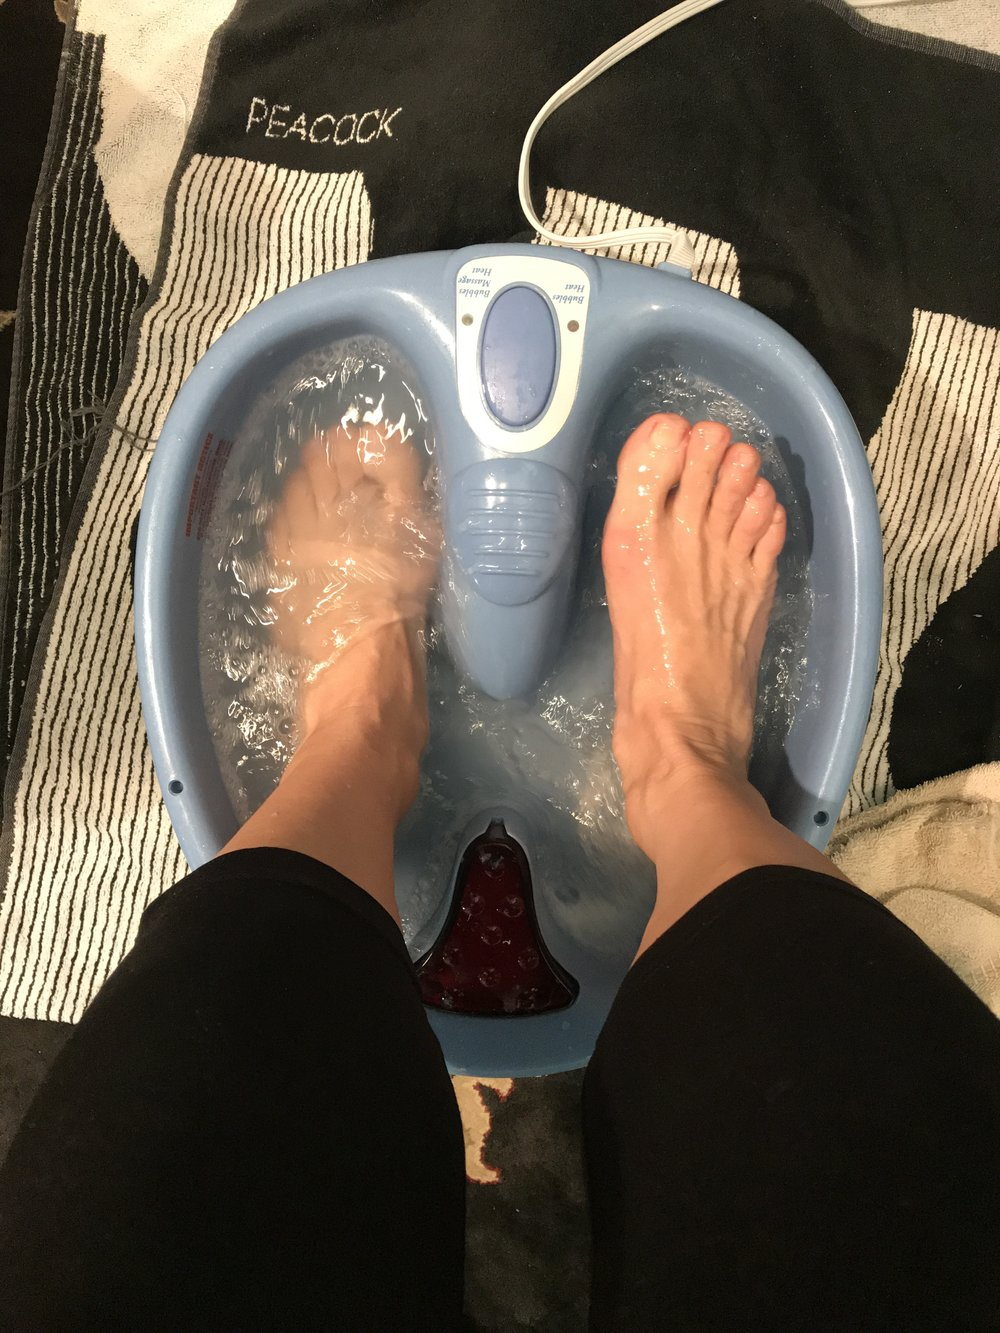 Hot tub time machine for my feet - Just add warm water, essential oils and shower or bath soap